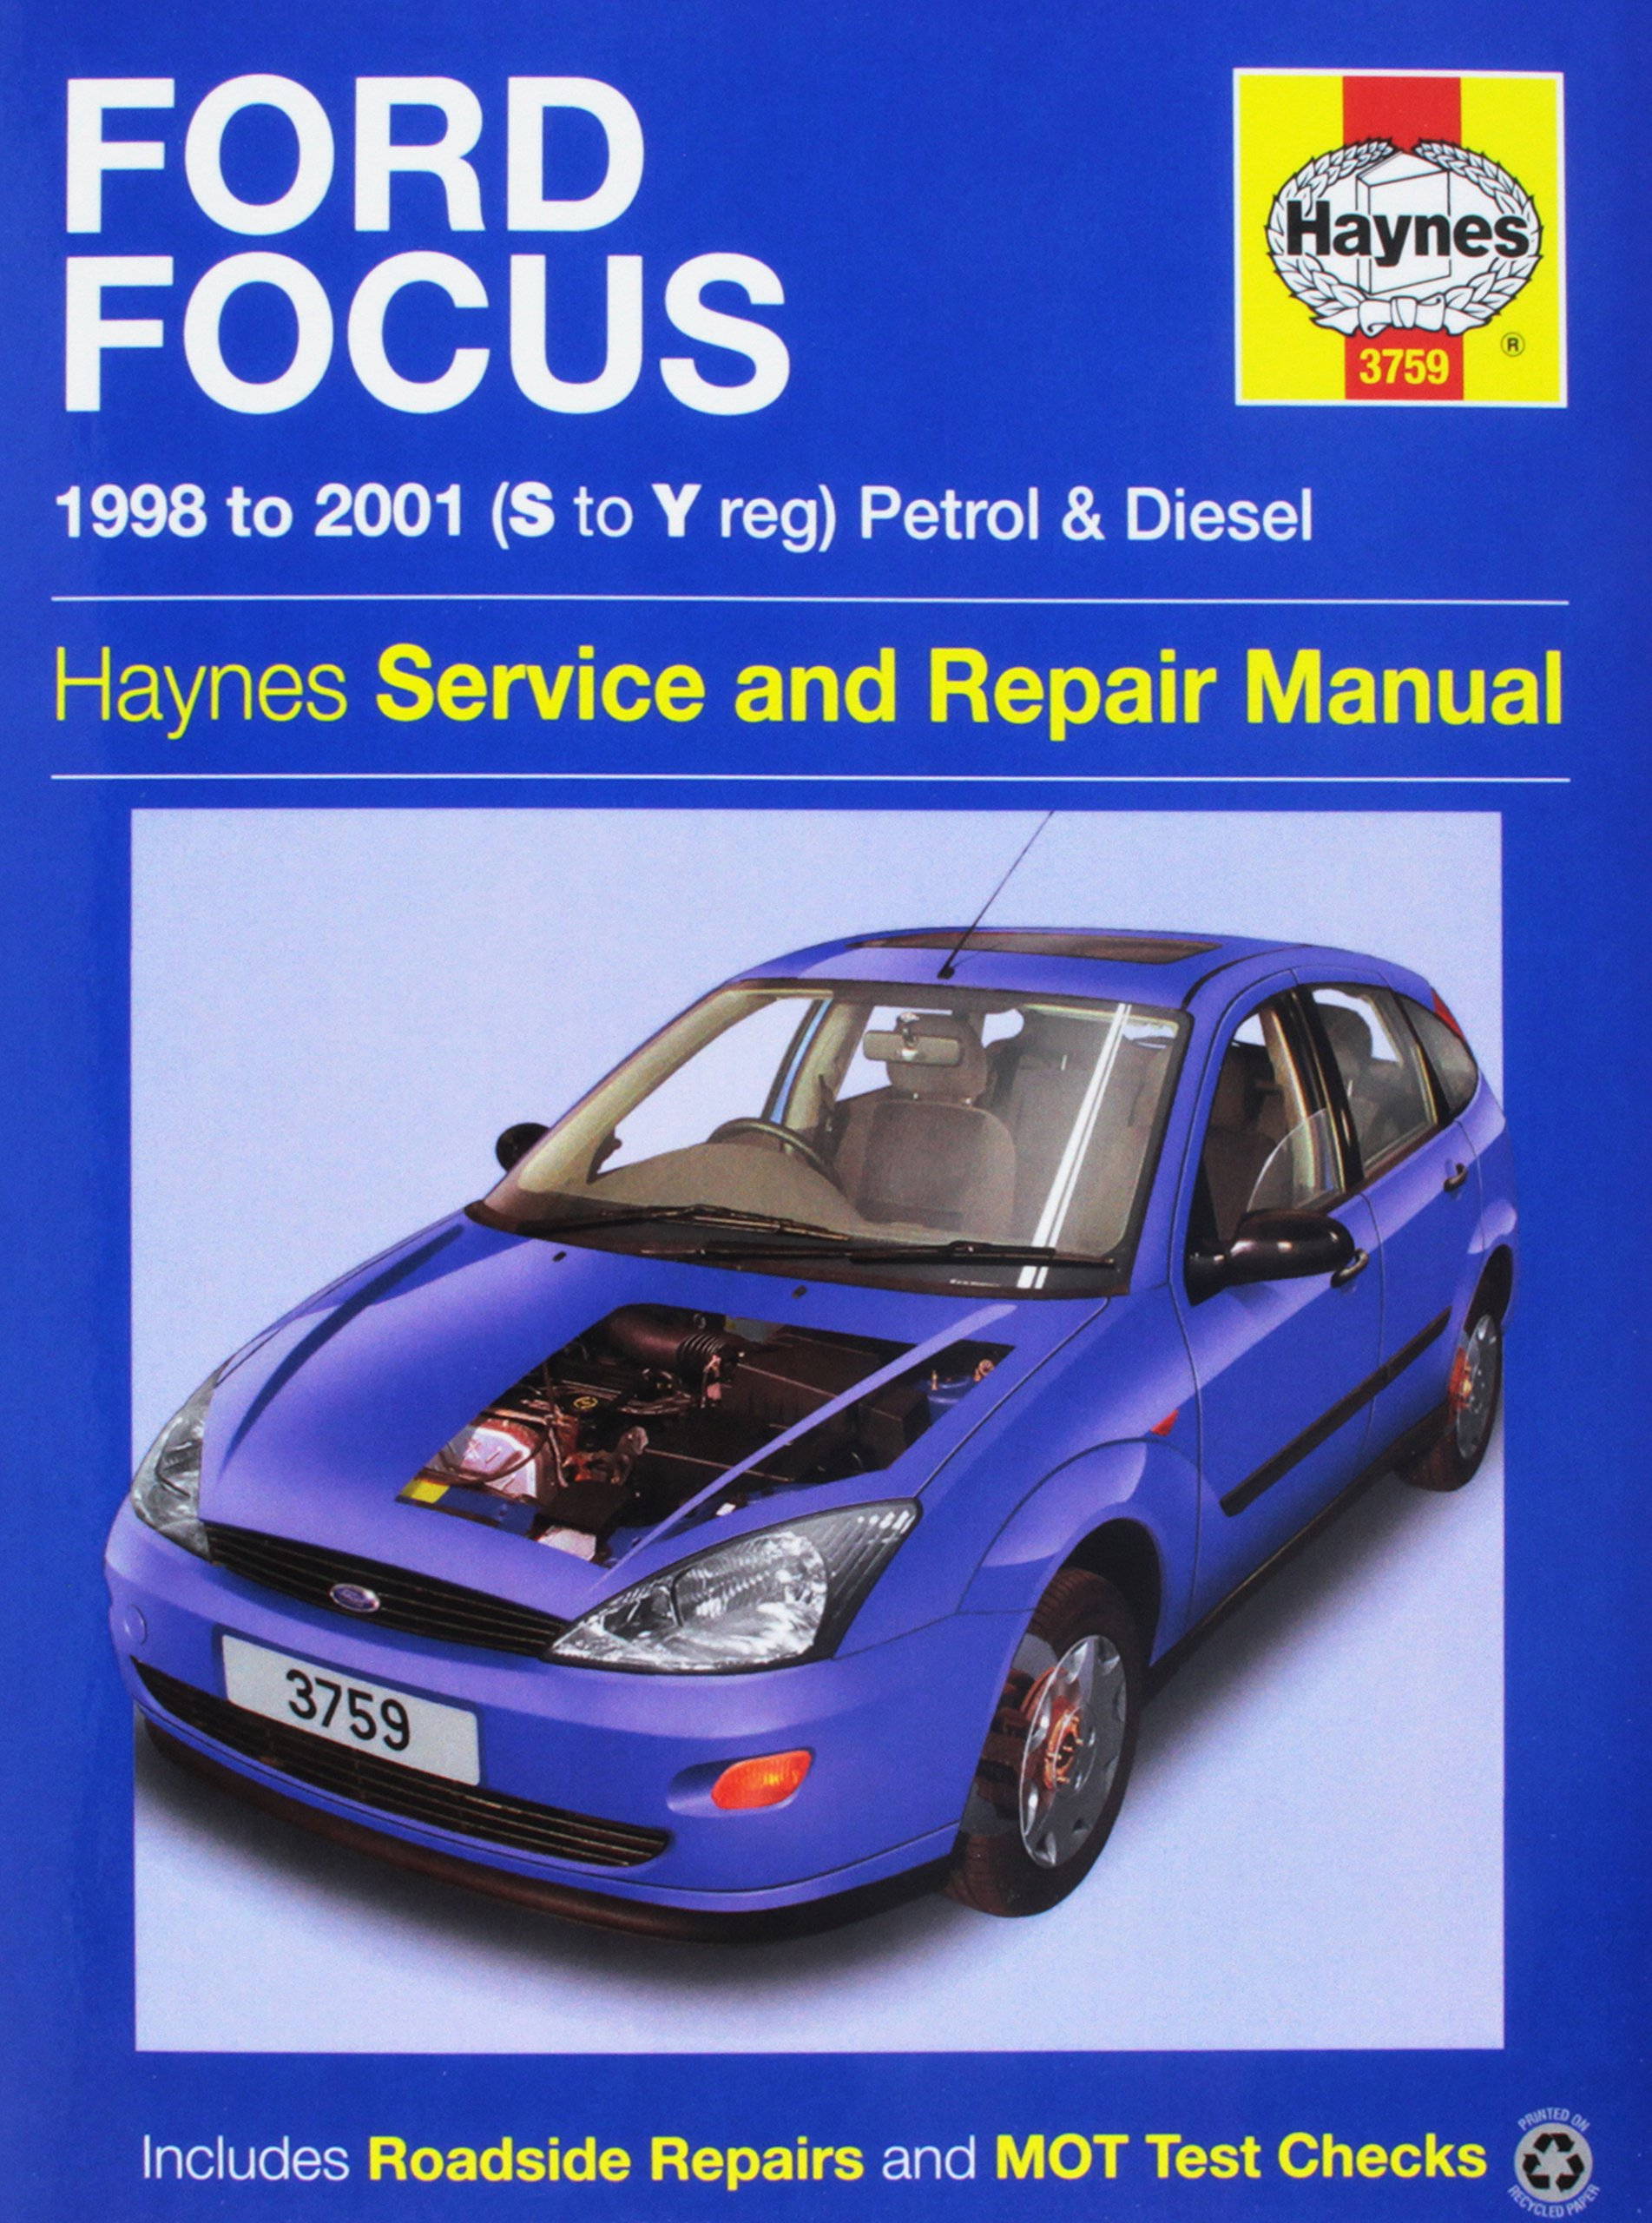 Ford Focus Service and Repair Manual (Haynes Service and Repair Manuals):  R. M. Jex, Peter Gill: 0699414001620: Amazon.com: Books